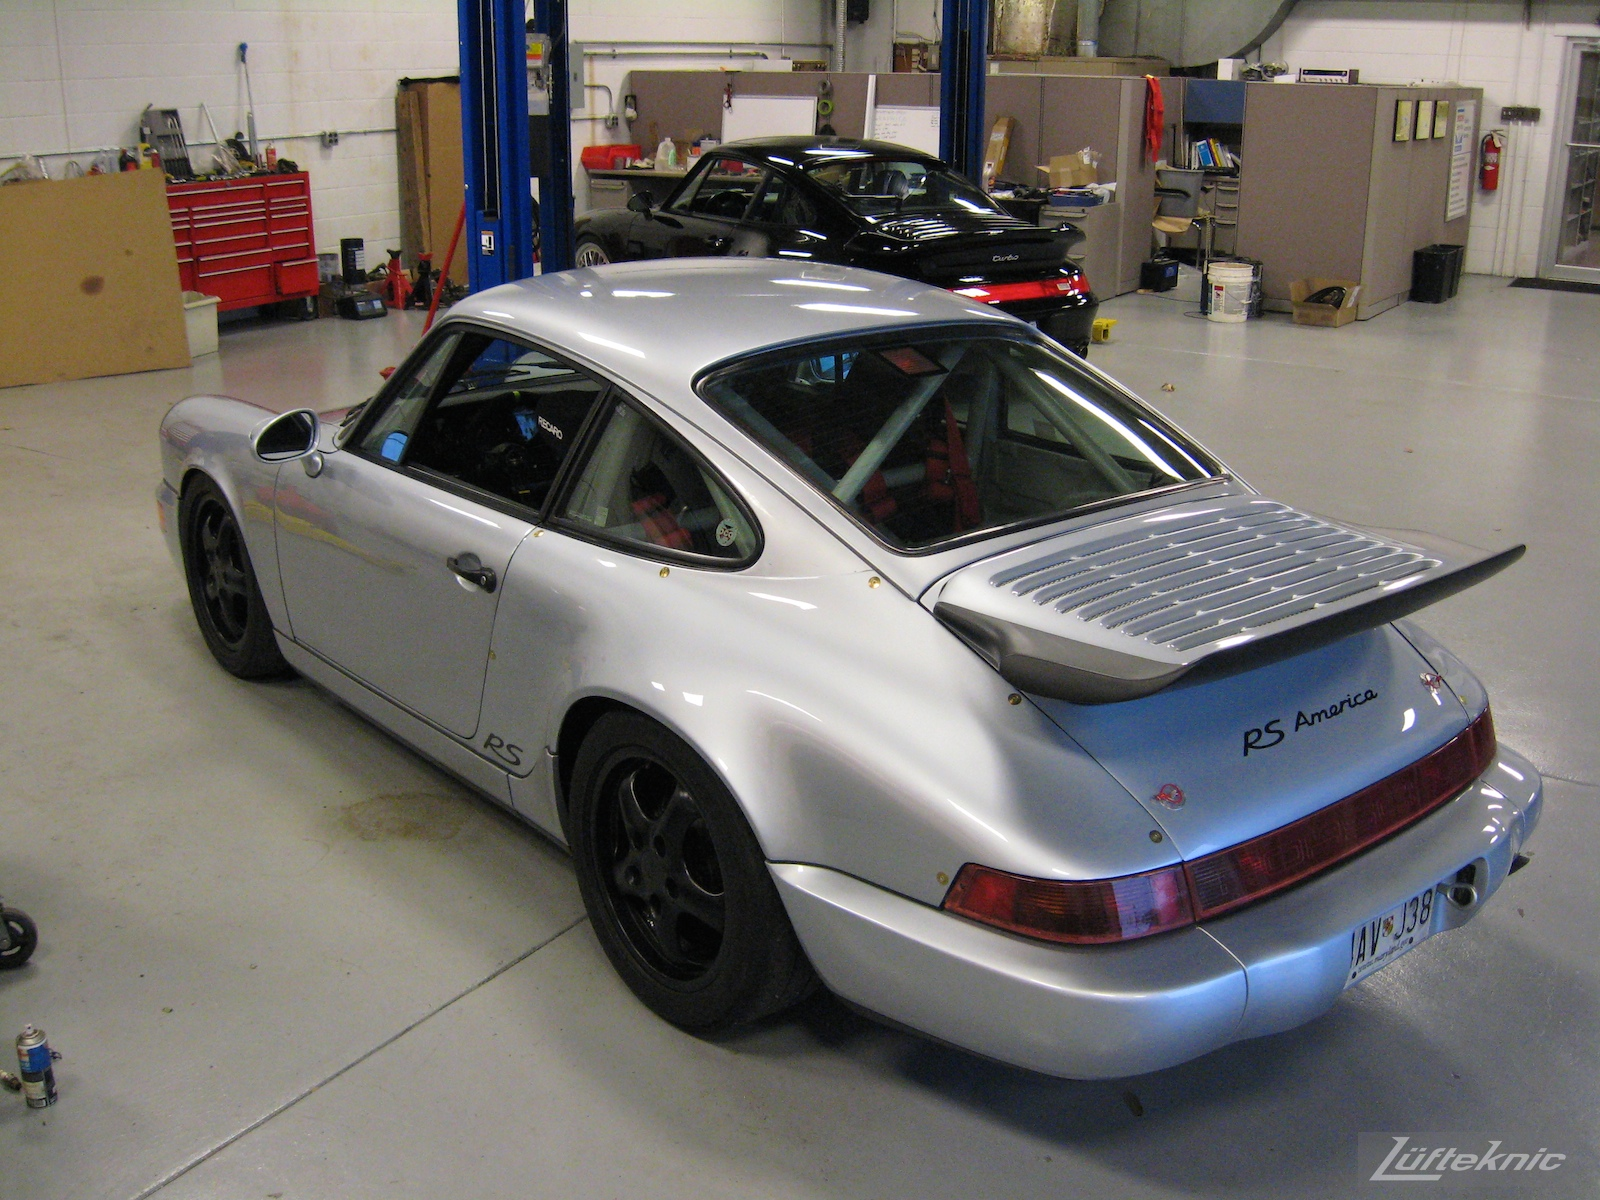 The completed 964 RS America project sitting in the Lüfteknic shop.